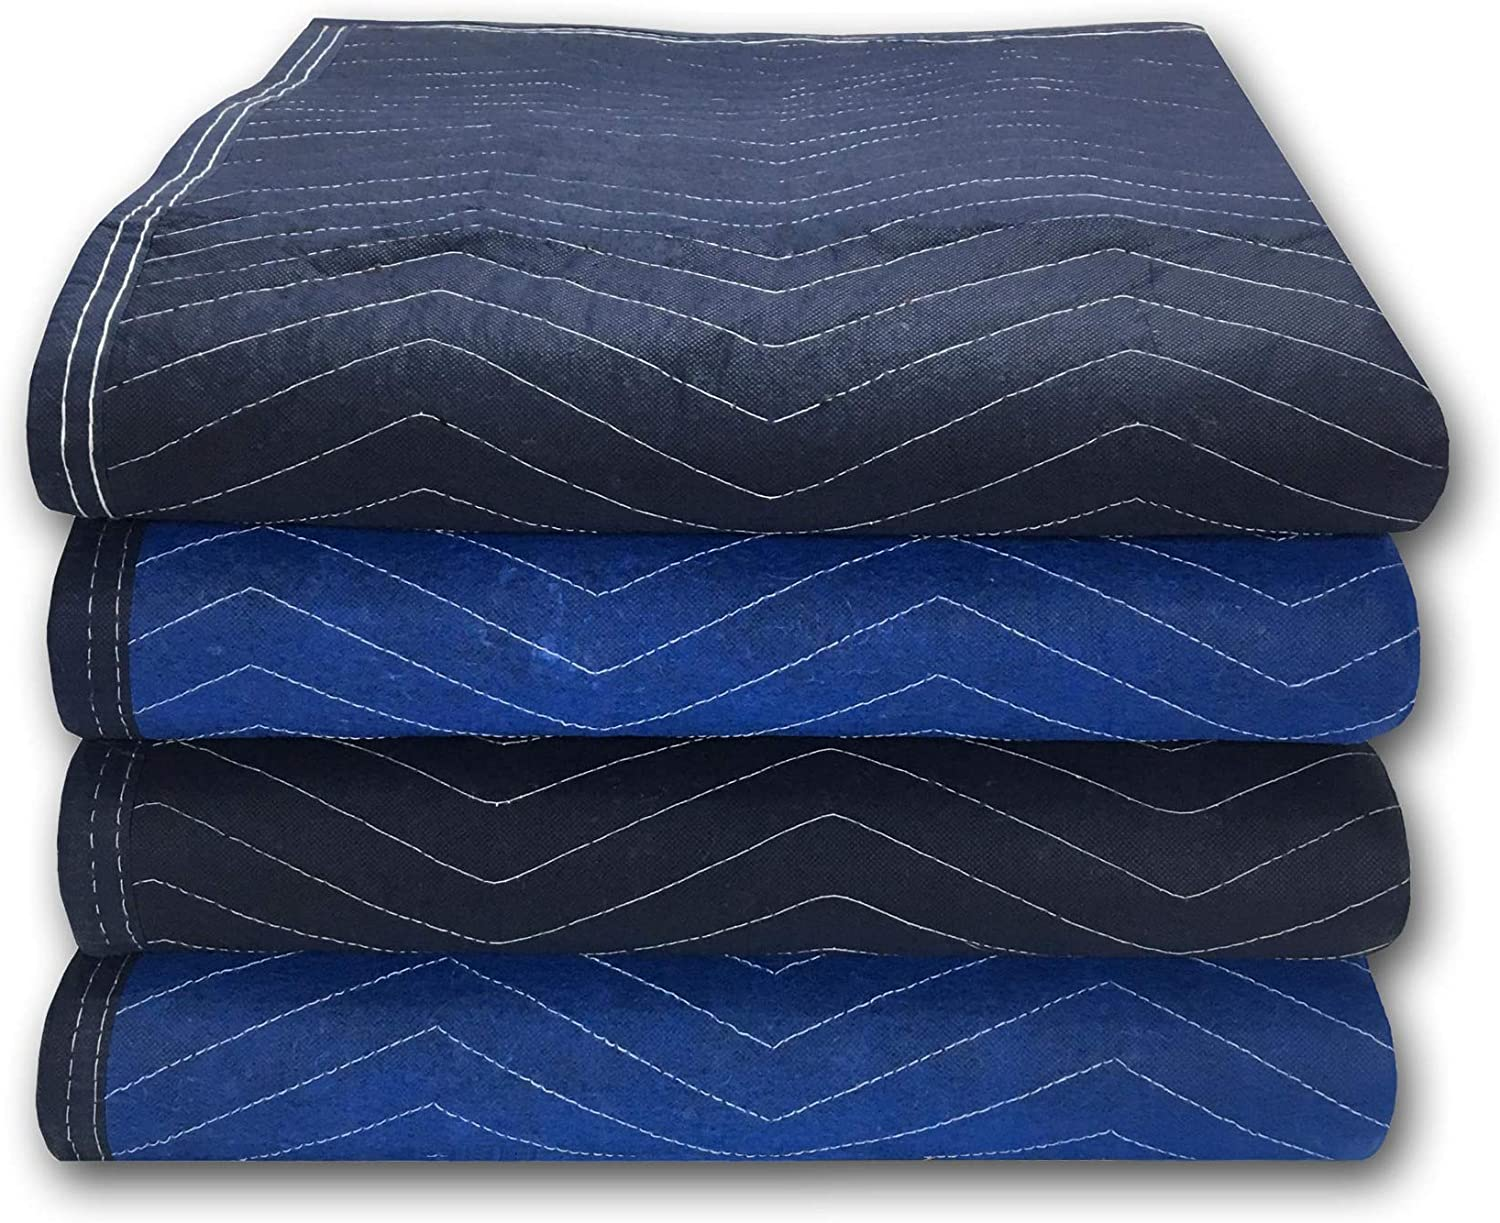 "Uboxes A0080HP04 Supreme Moving Blankets, 72"" X 80"", Blue"